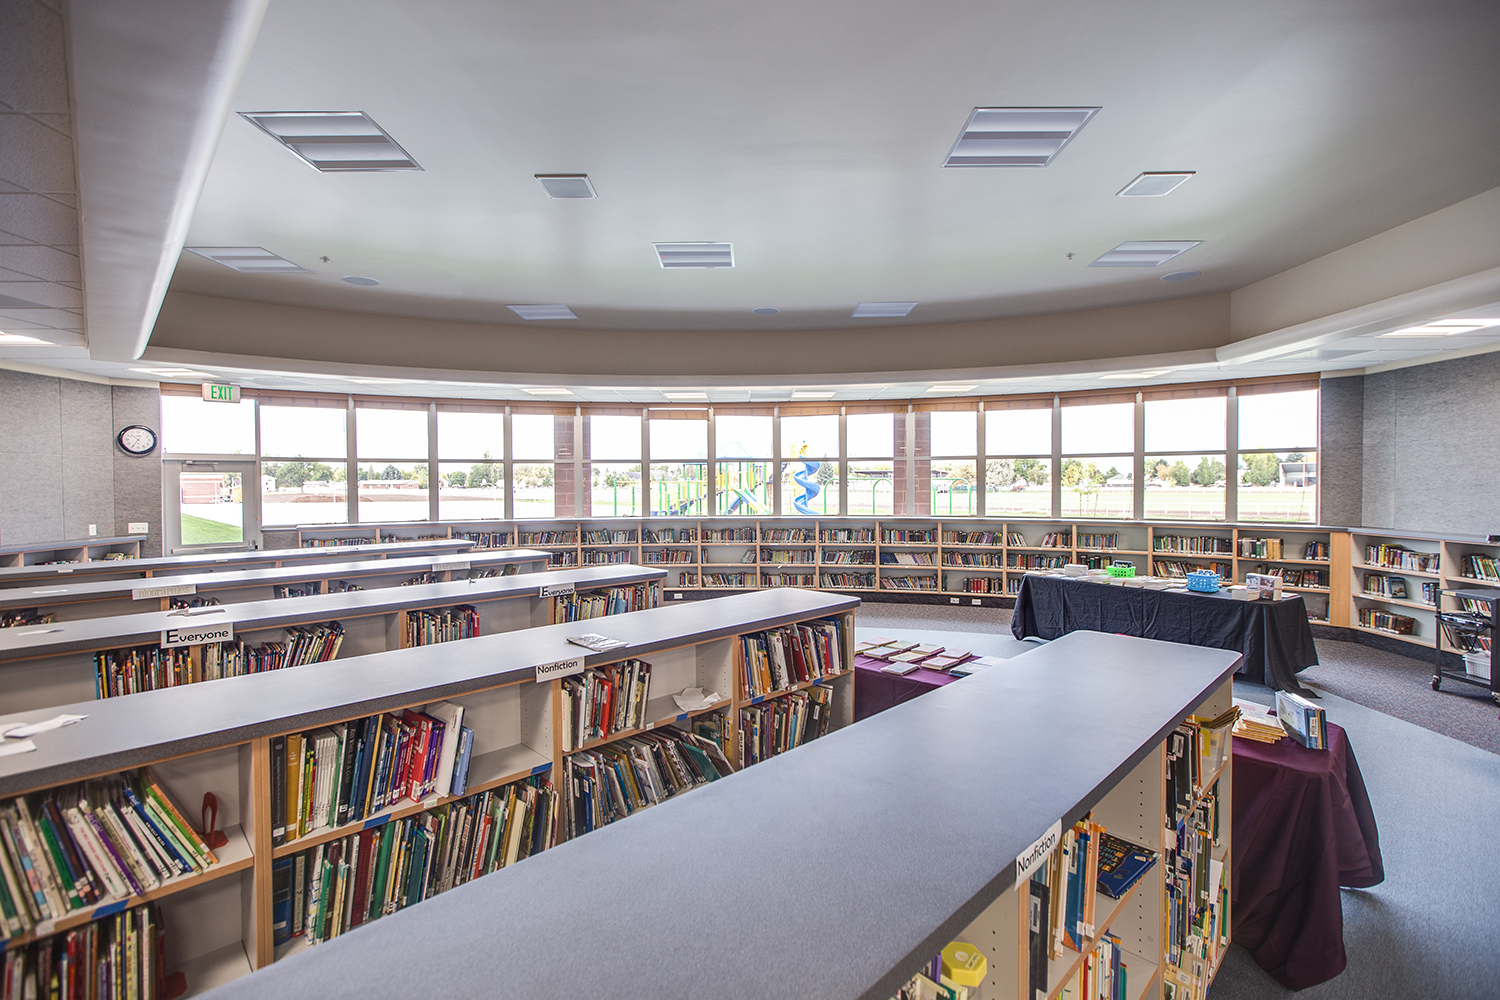 Lewiston Elementary School Library - Lewiston, UT